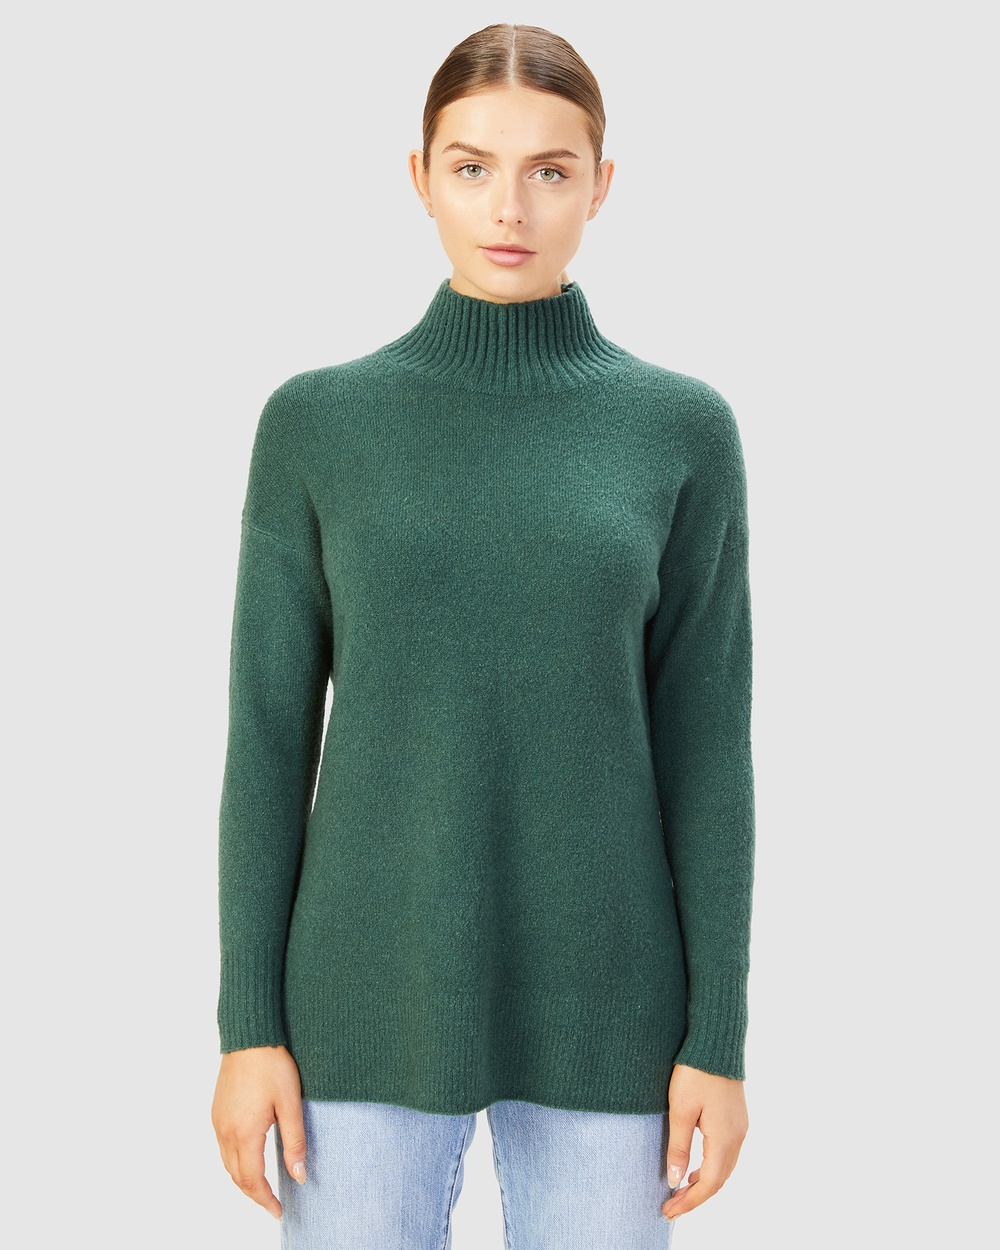 French Connection Cosy High Neck Knit Jumpers & Cardigans FOREST GREEN Australia